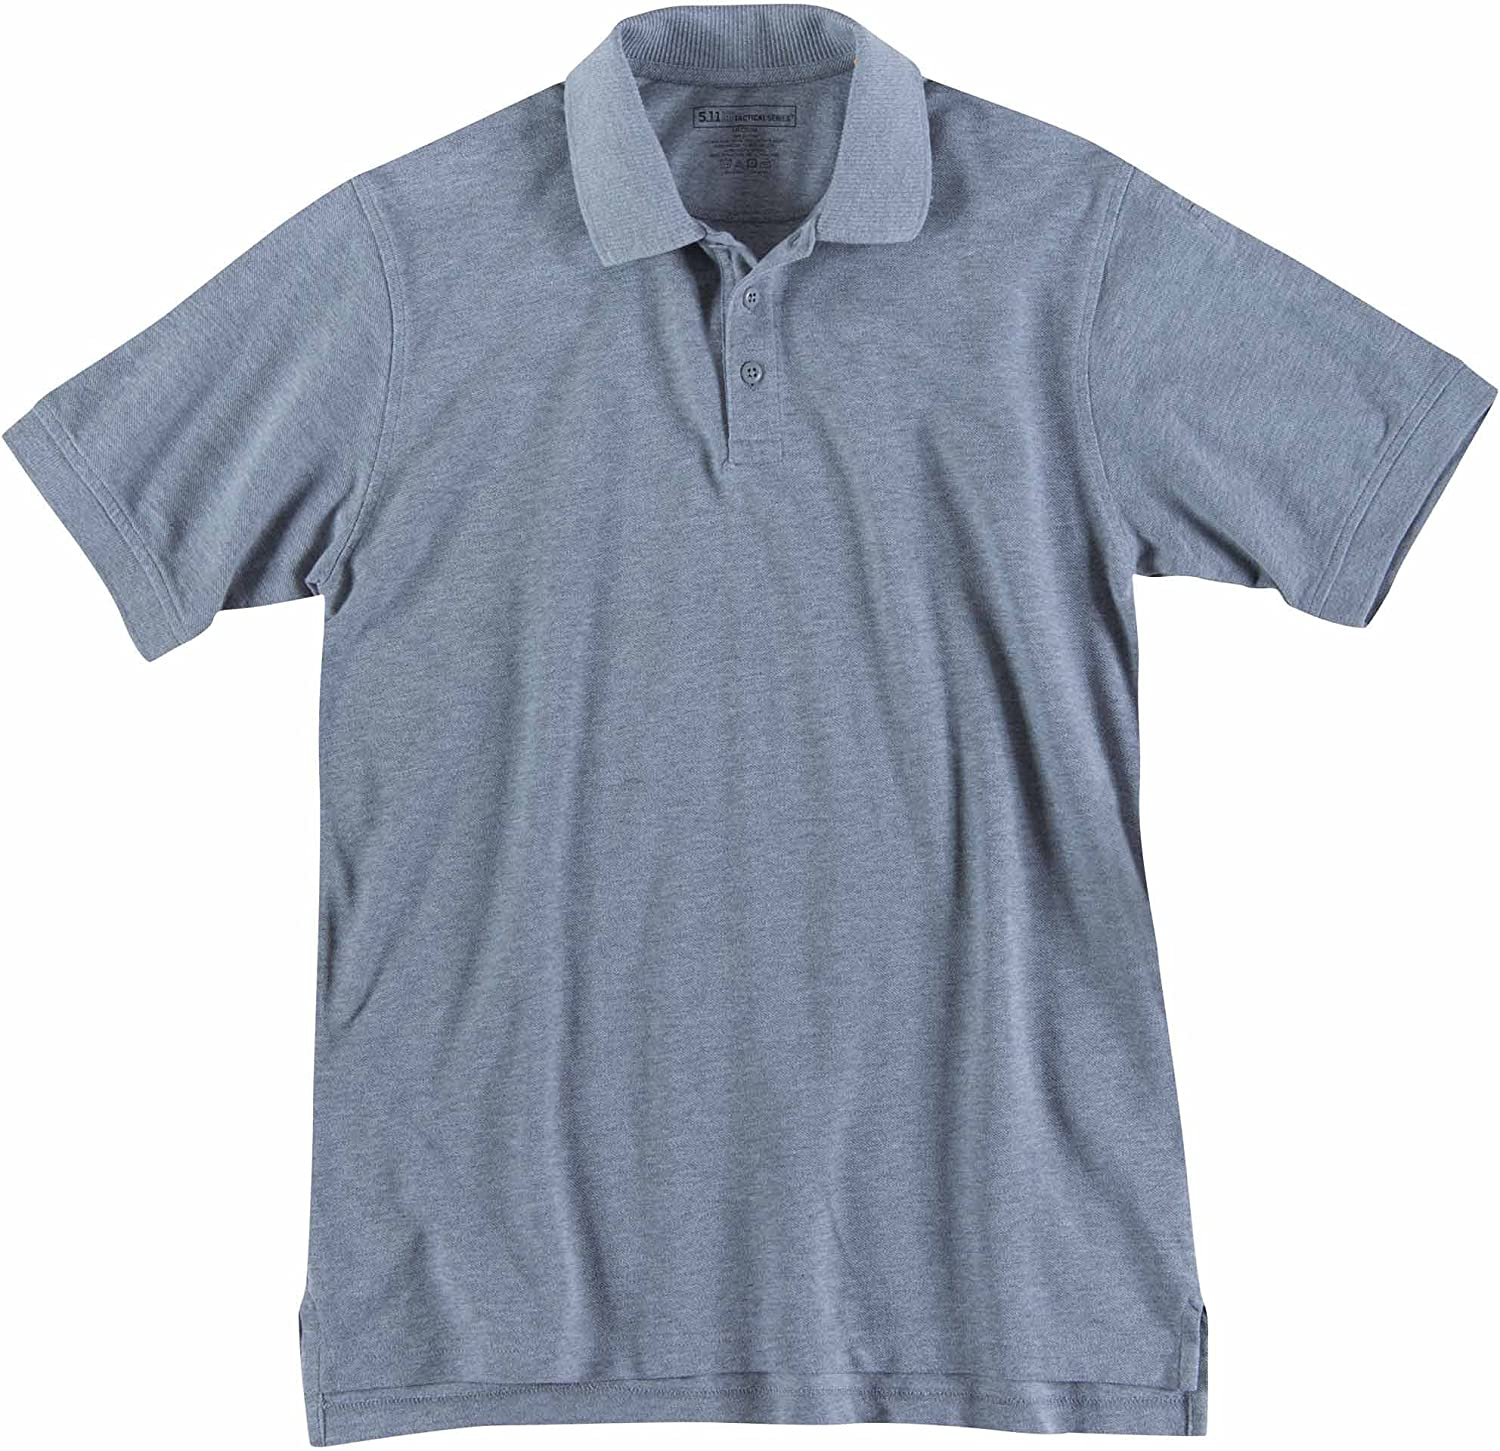 5.11 Men's Tactical Short-Sleeve Professional Polo Max 45% Outlet ☆ Free Shipping OFF